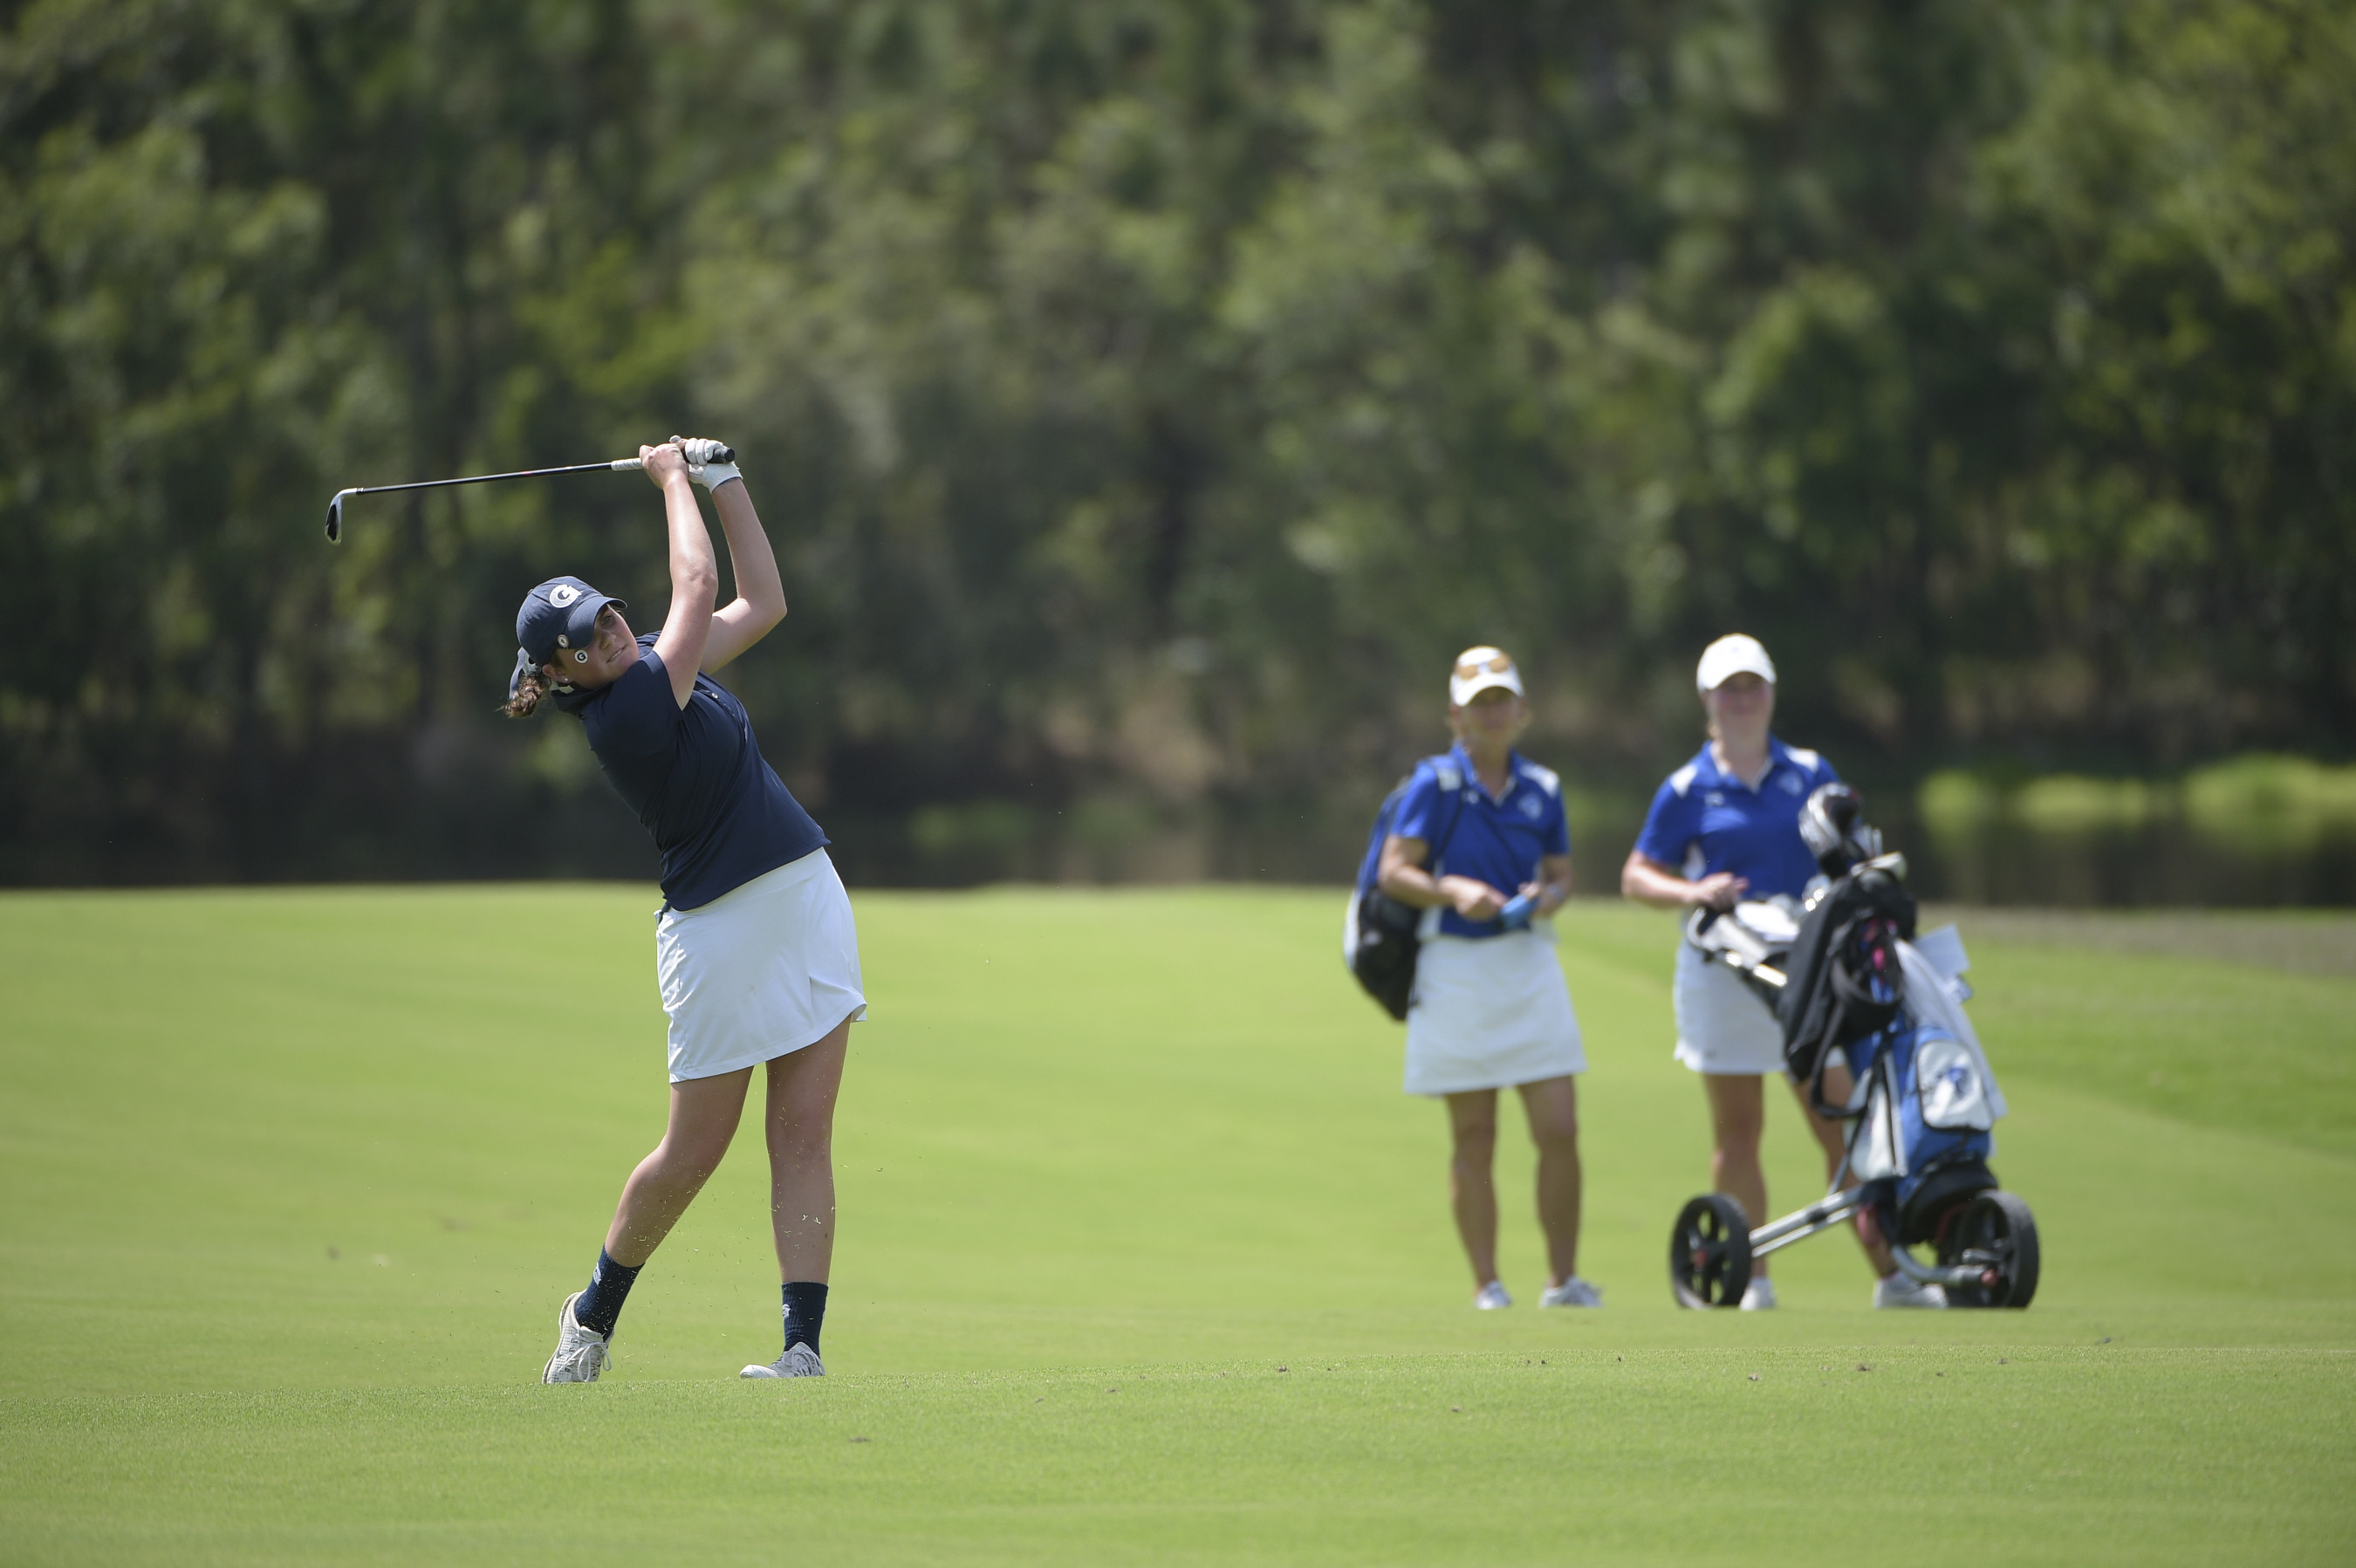 Jacquelyn Eleey shot a 1-over par 73 on Sunday to finish at 5-over par 149 for two rounds and won the individual title at the Princeton Invitational, held at Springdale Golf Club in New Jersey.